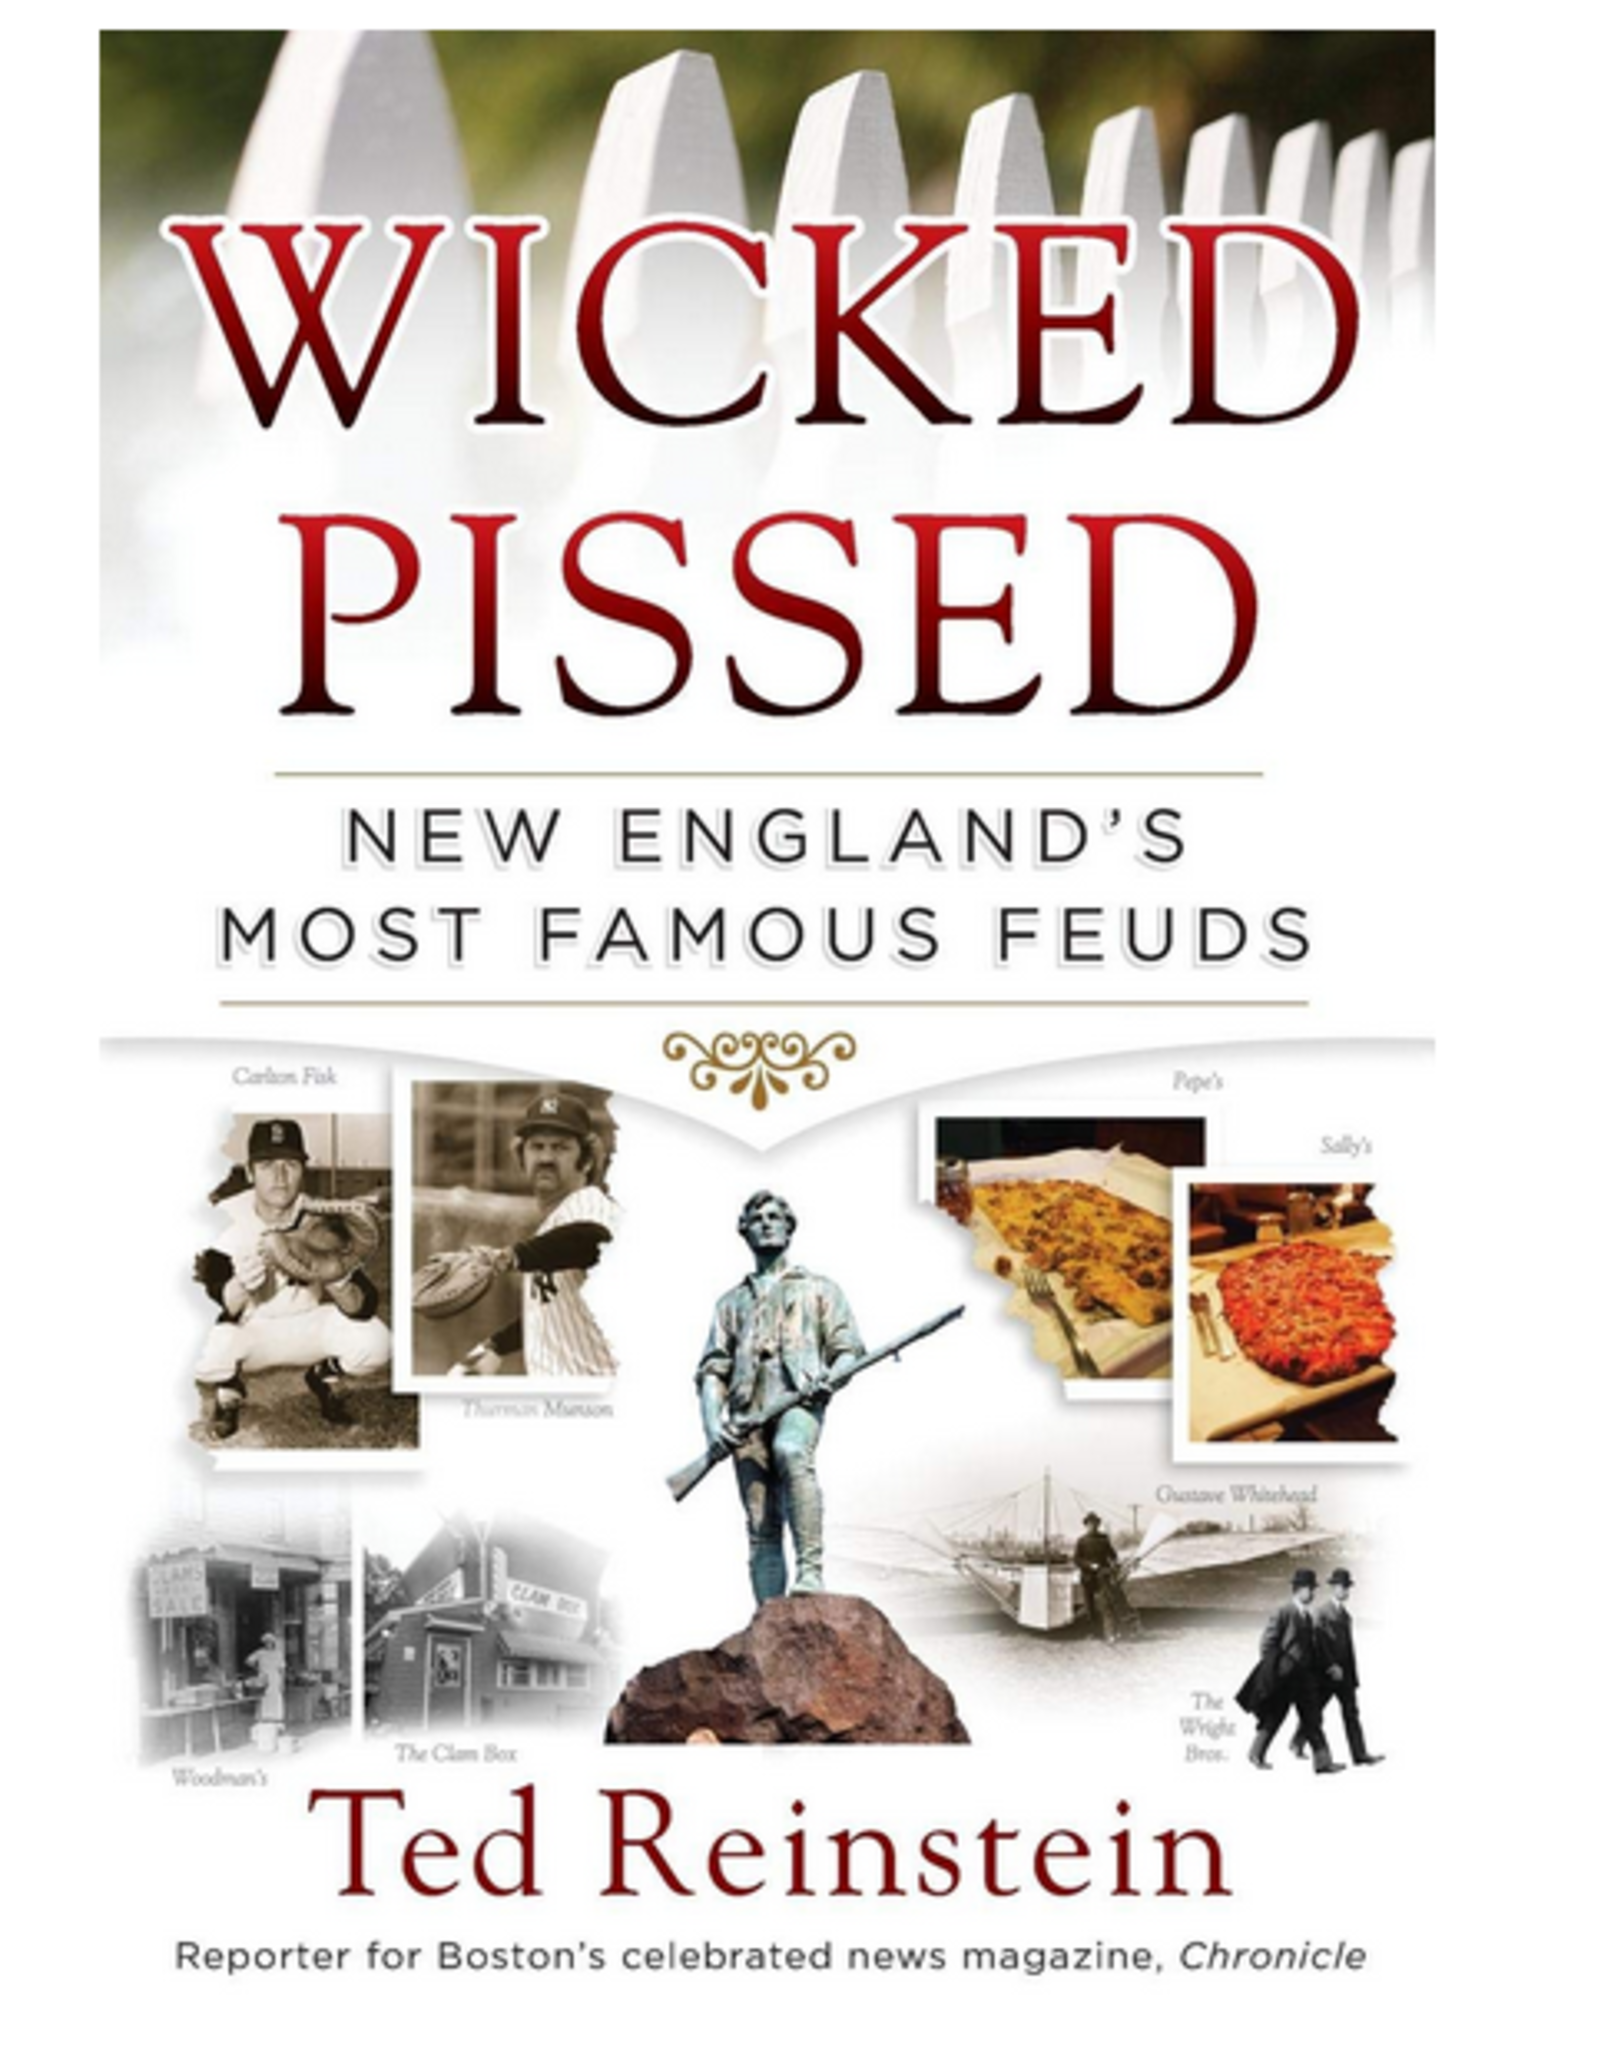 Wicked Pissed New England's Most Famous Feuds